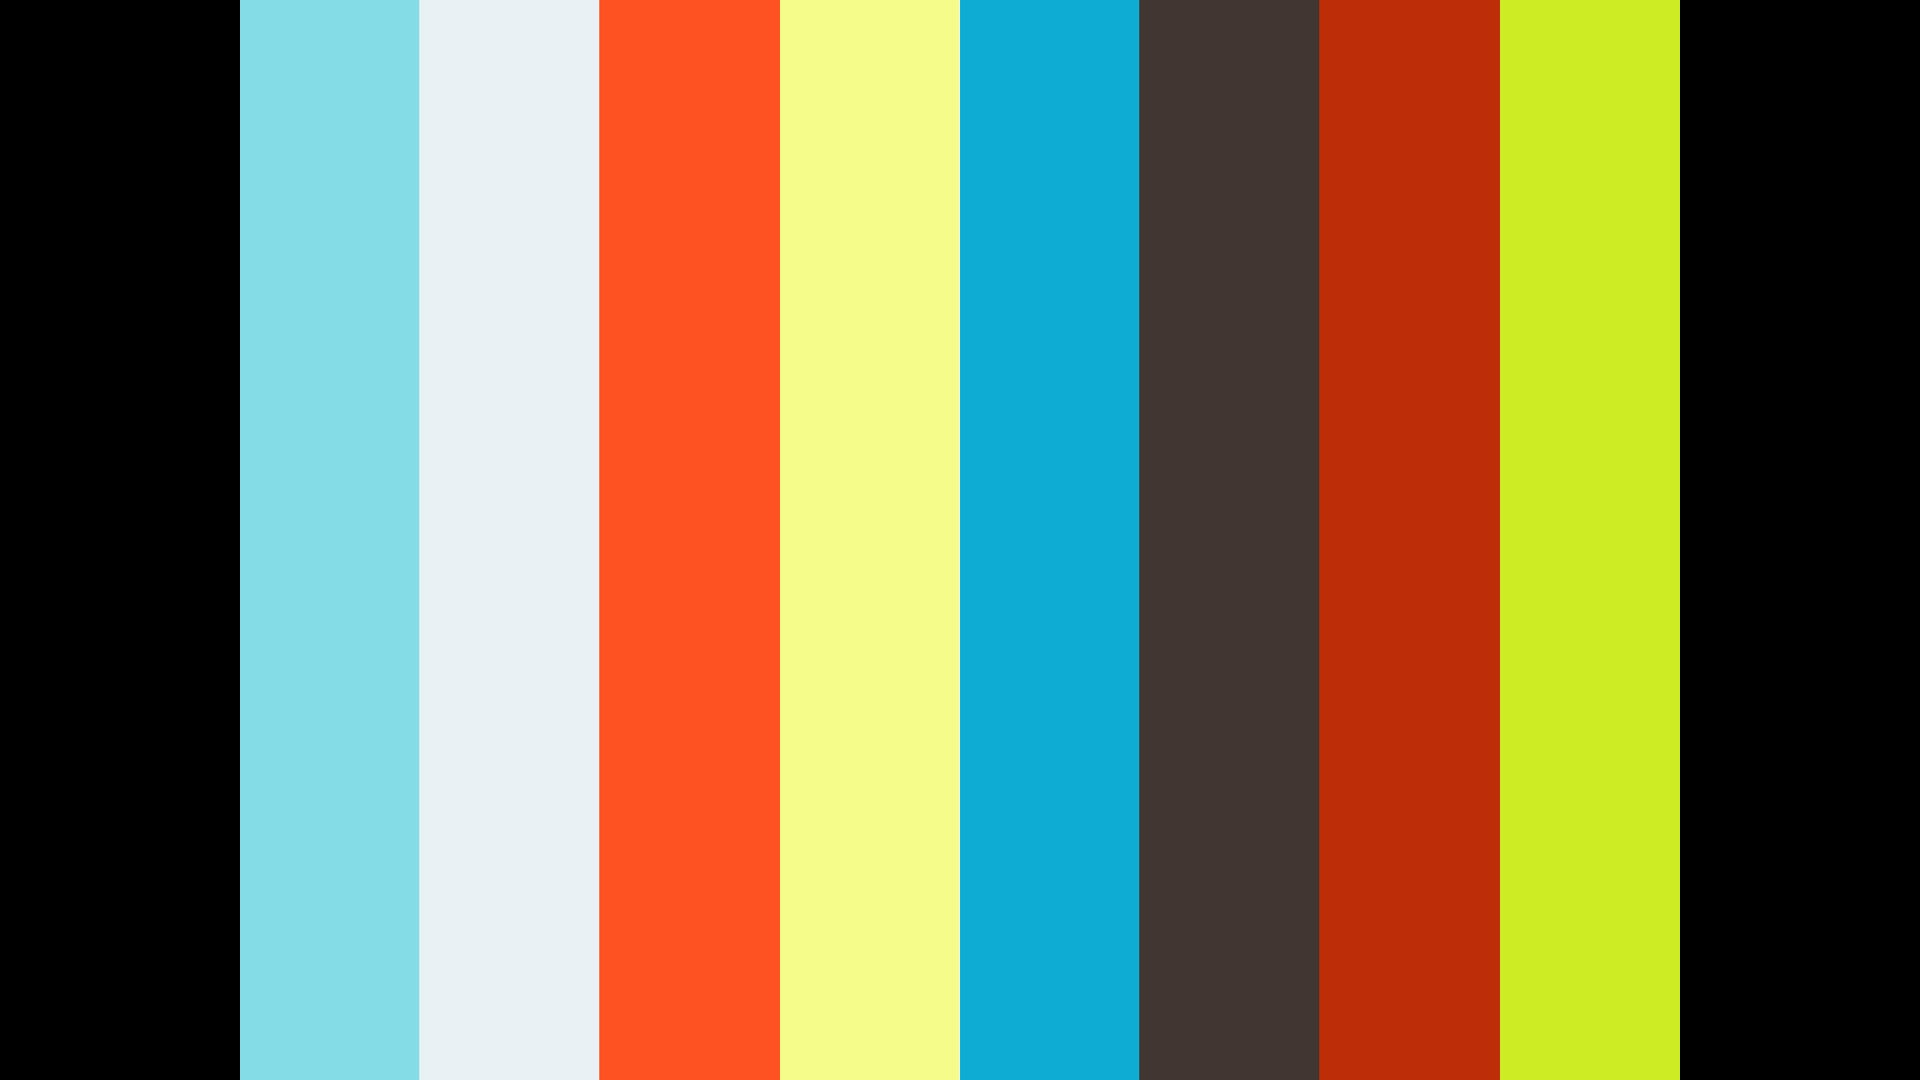 Untethered: My Passion - Kat Carney